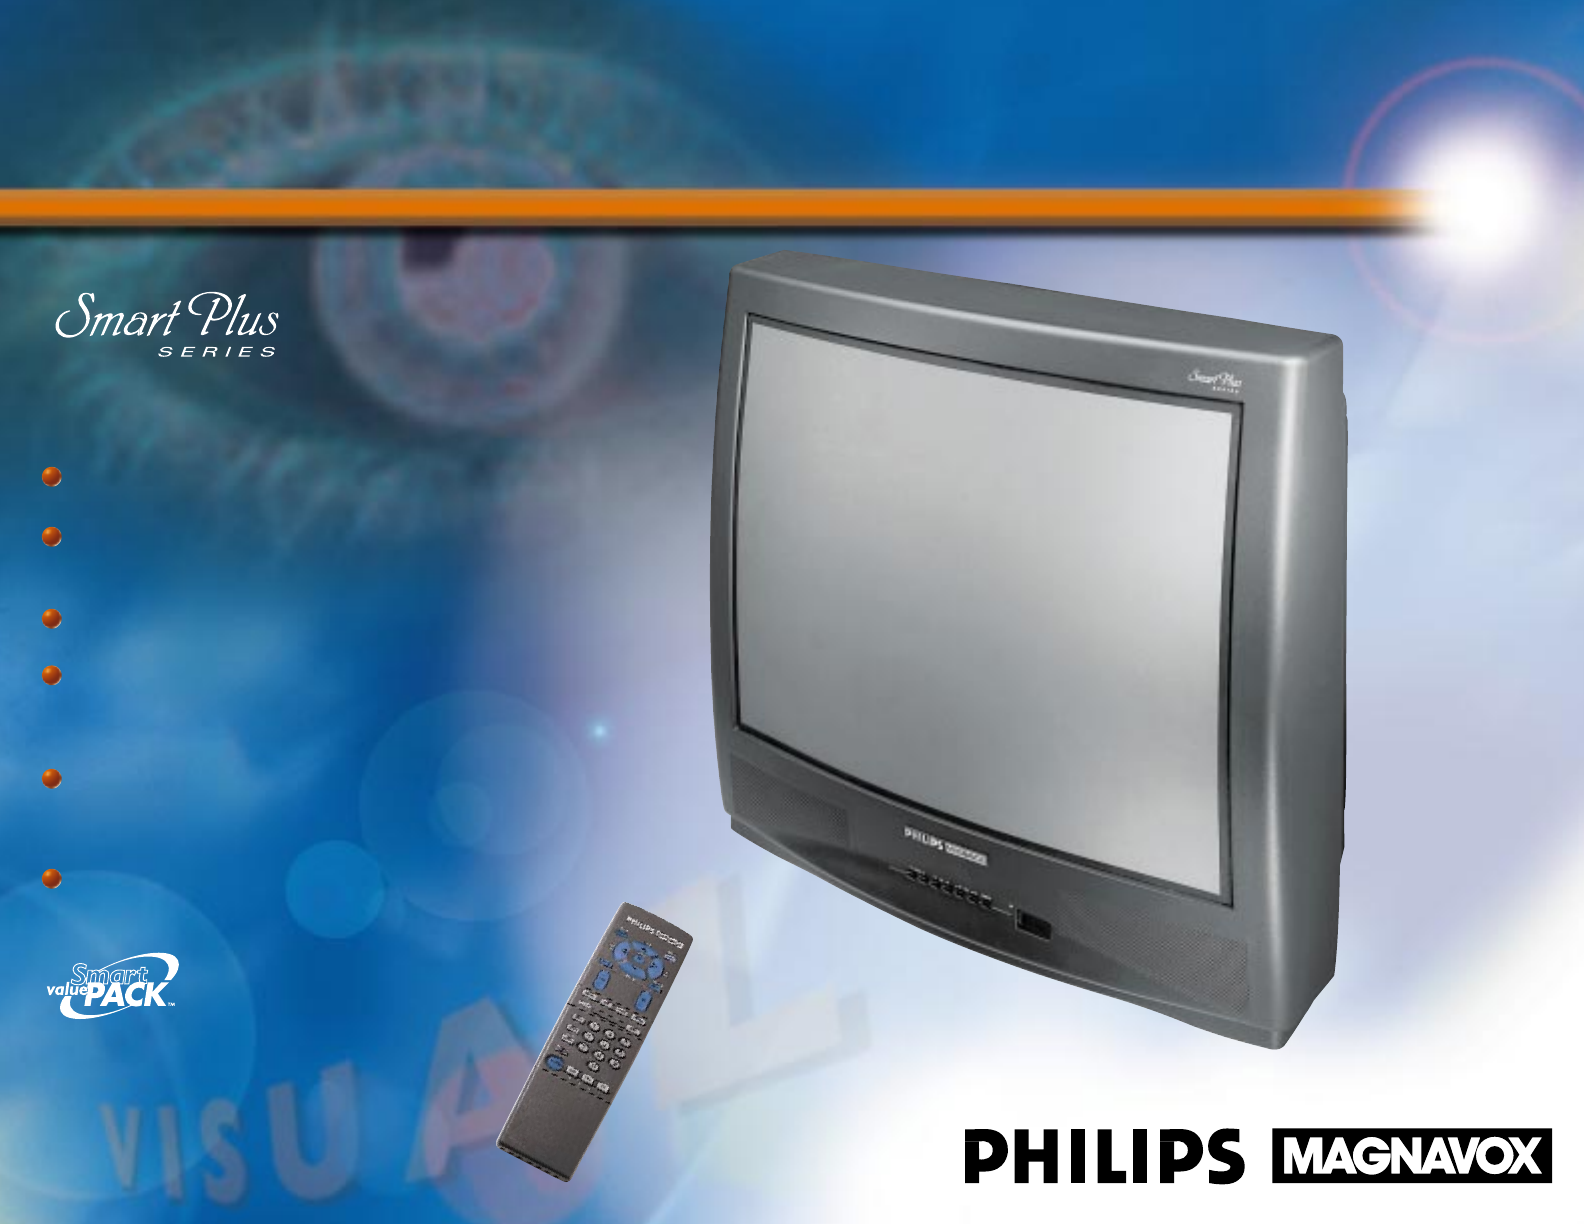 philips crt television tp2780c user guide manualsonline com rh tv manualsonline com Philips User Guides Philips TV Manual